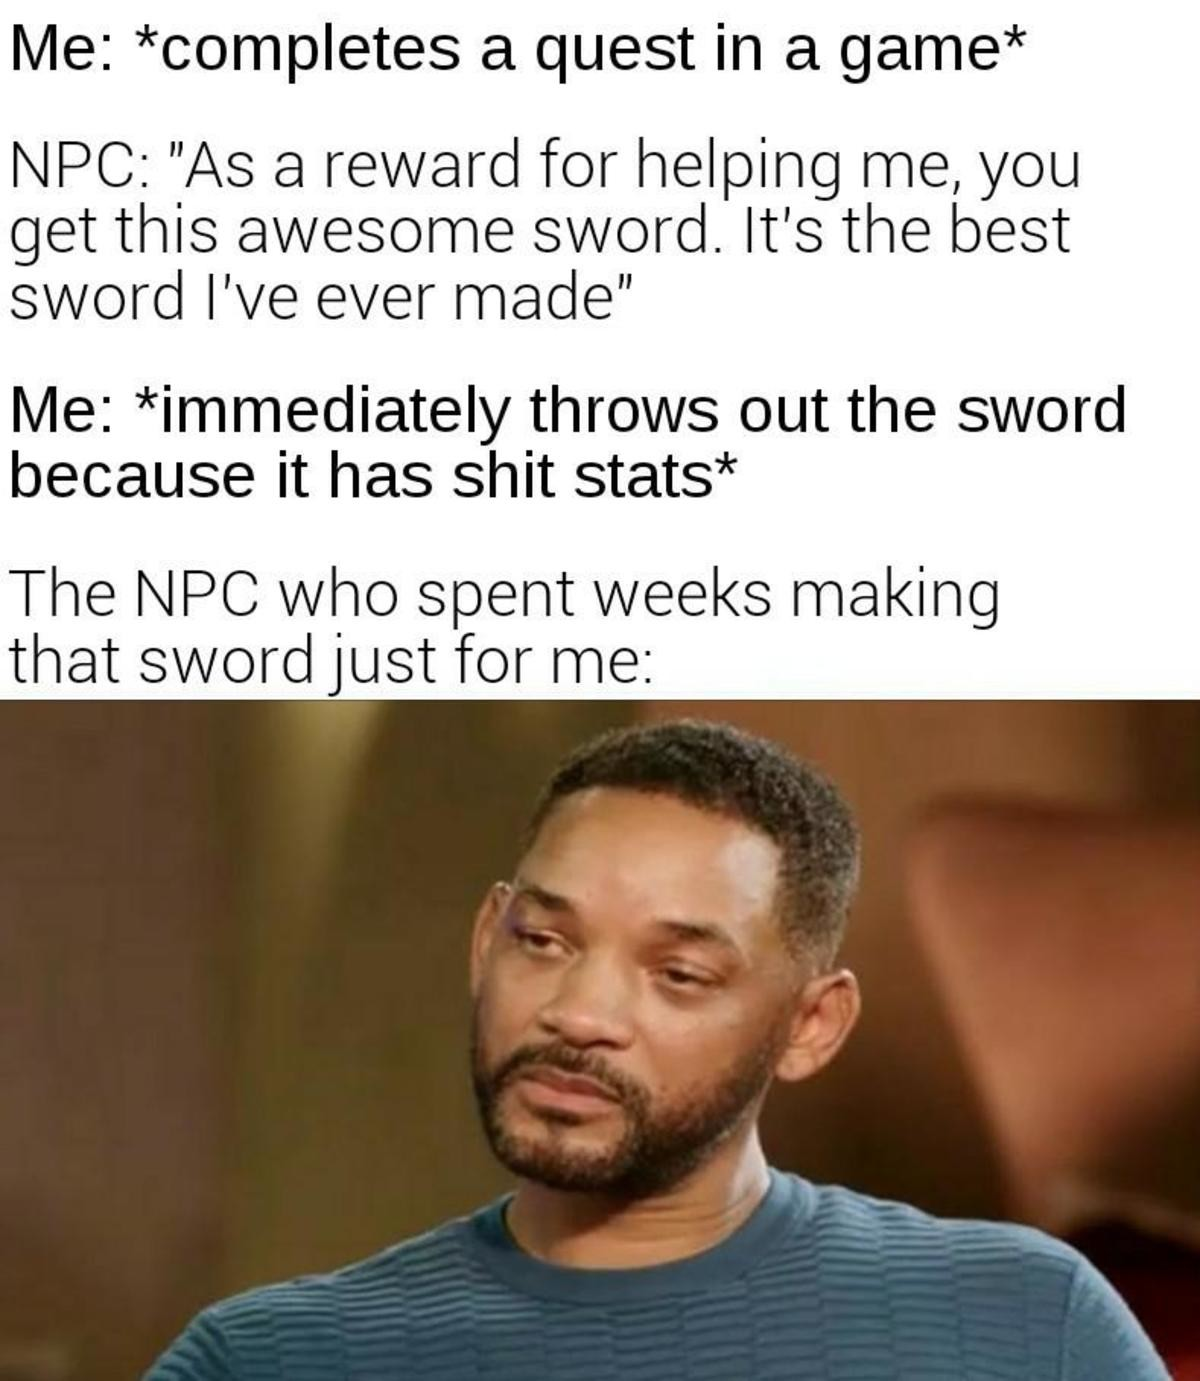 Sword. .. If it's a unique I stash it everytime, otherwise thanks for the 20 quid bucko